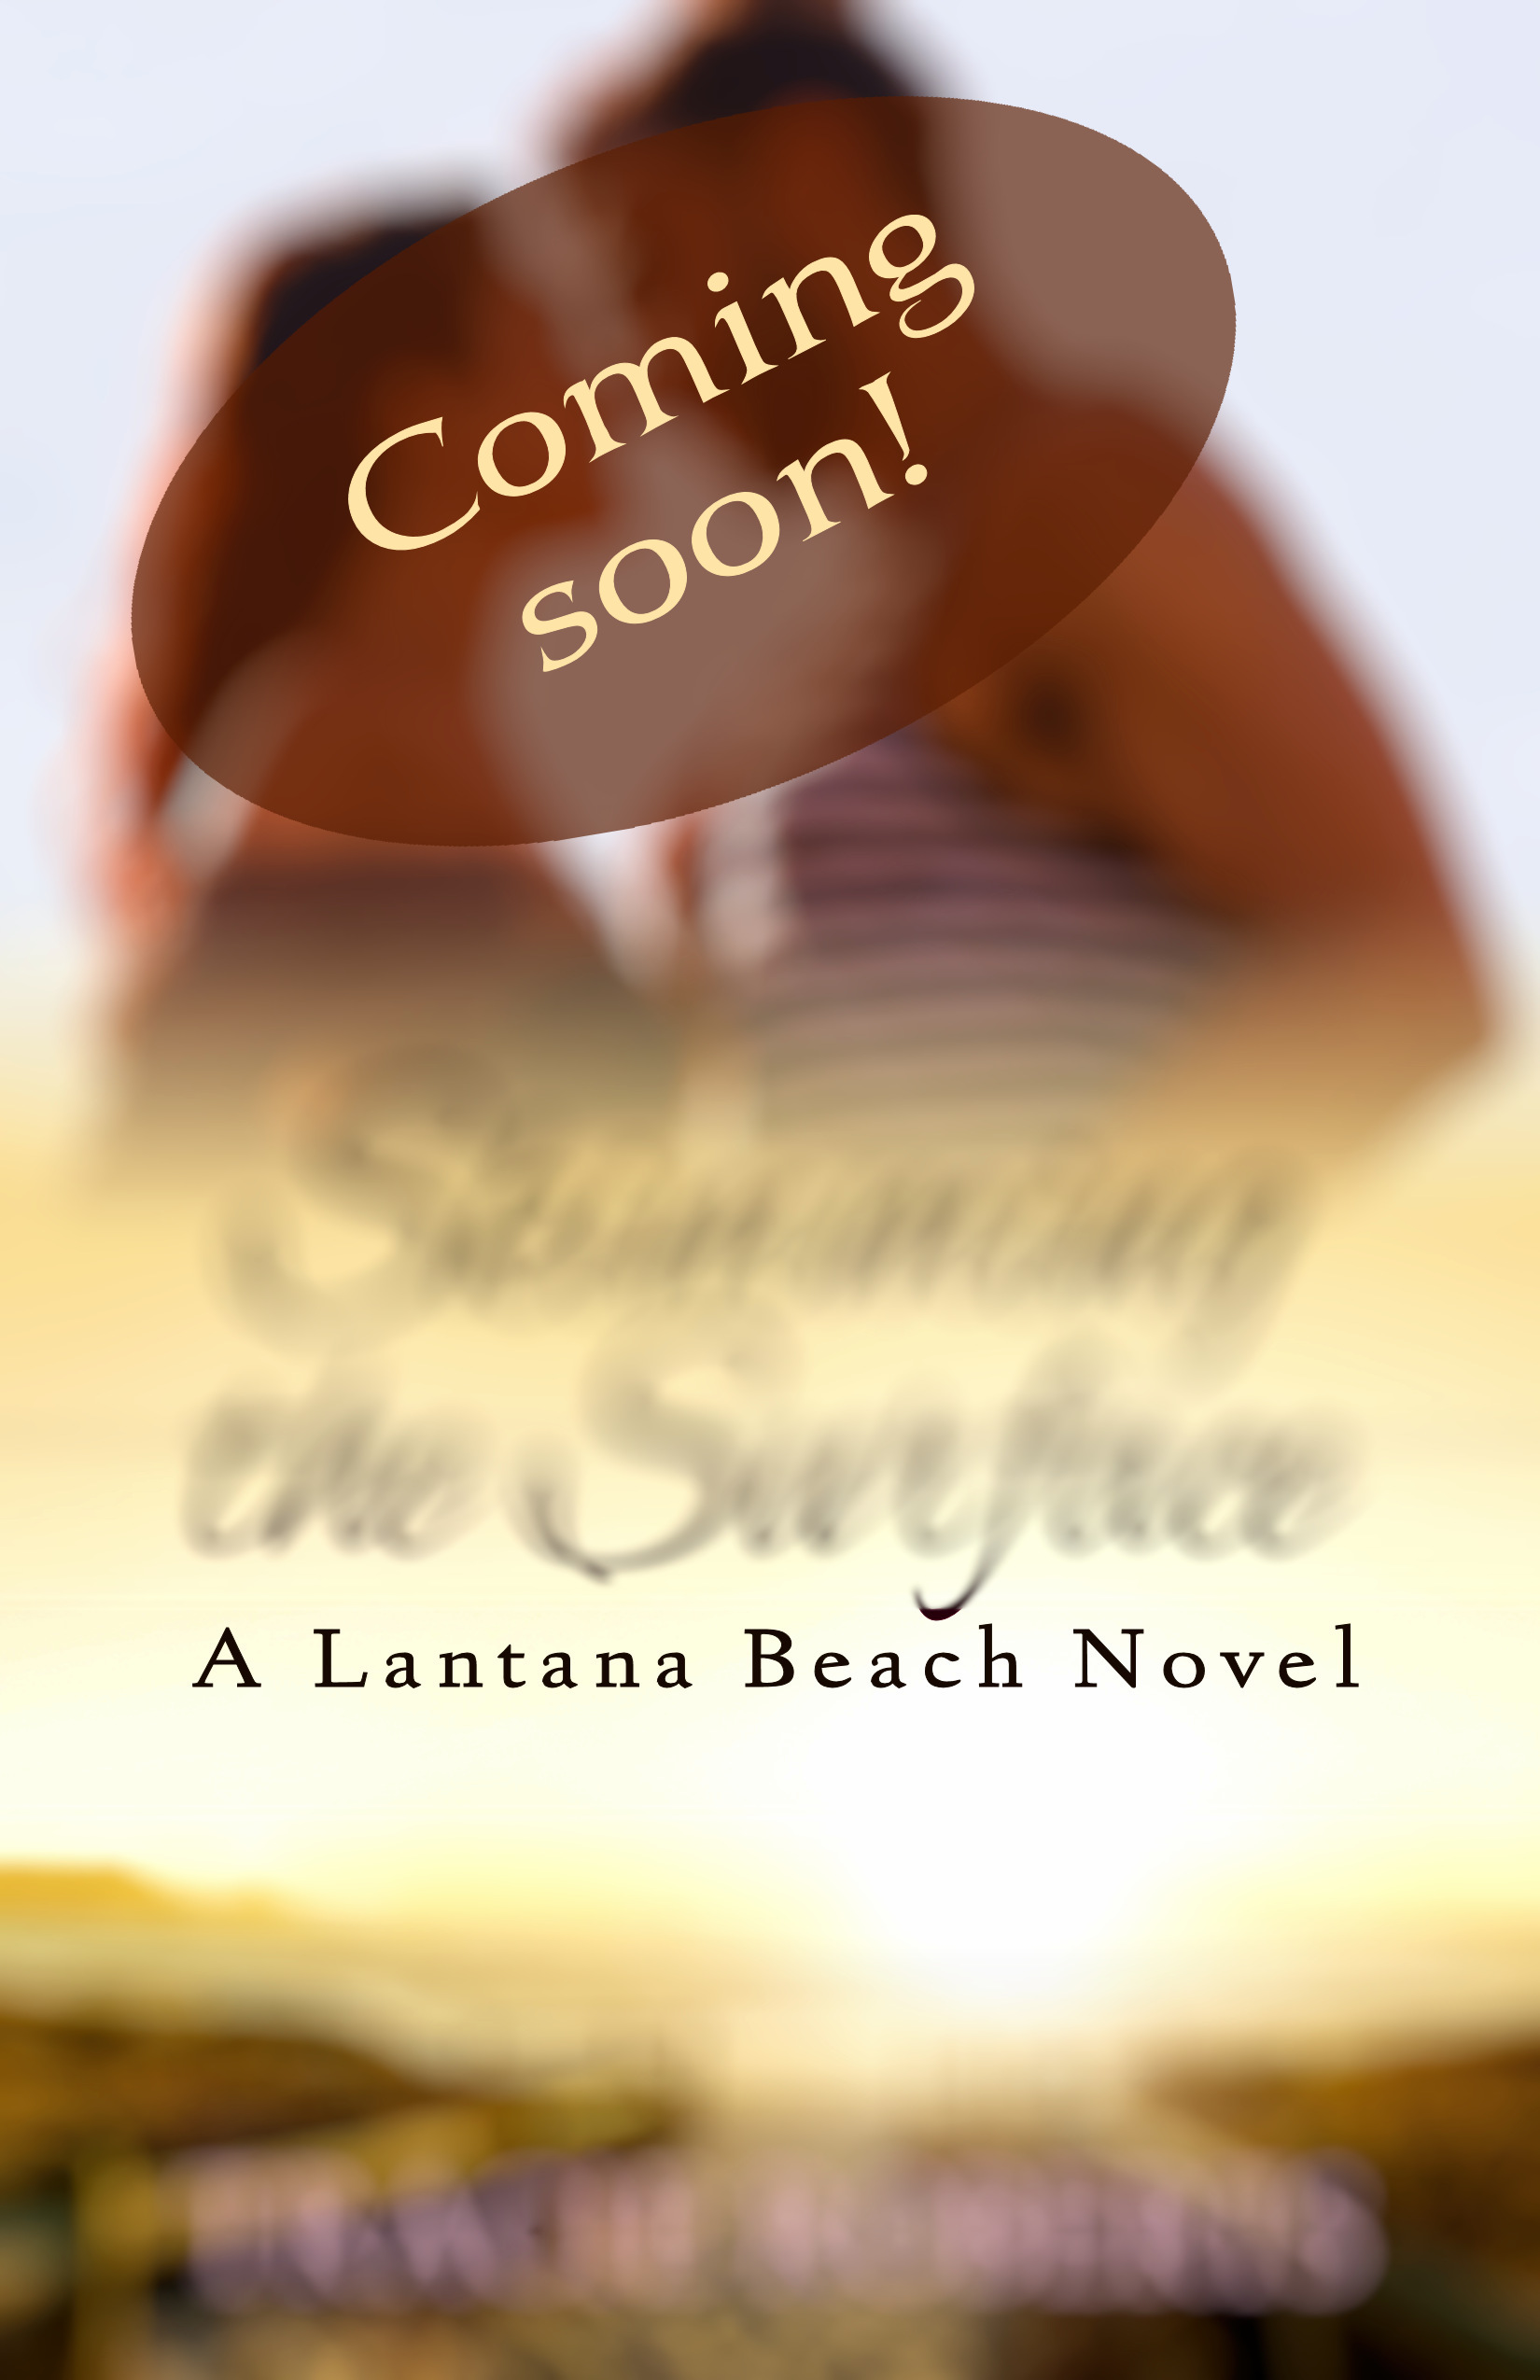 The Lantana Beach Series